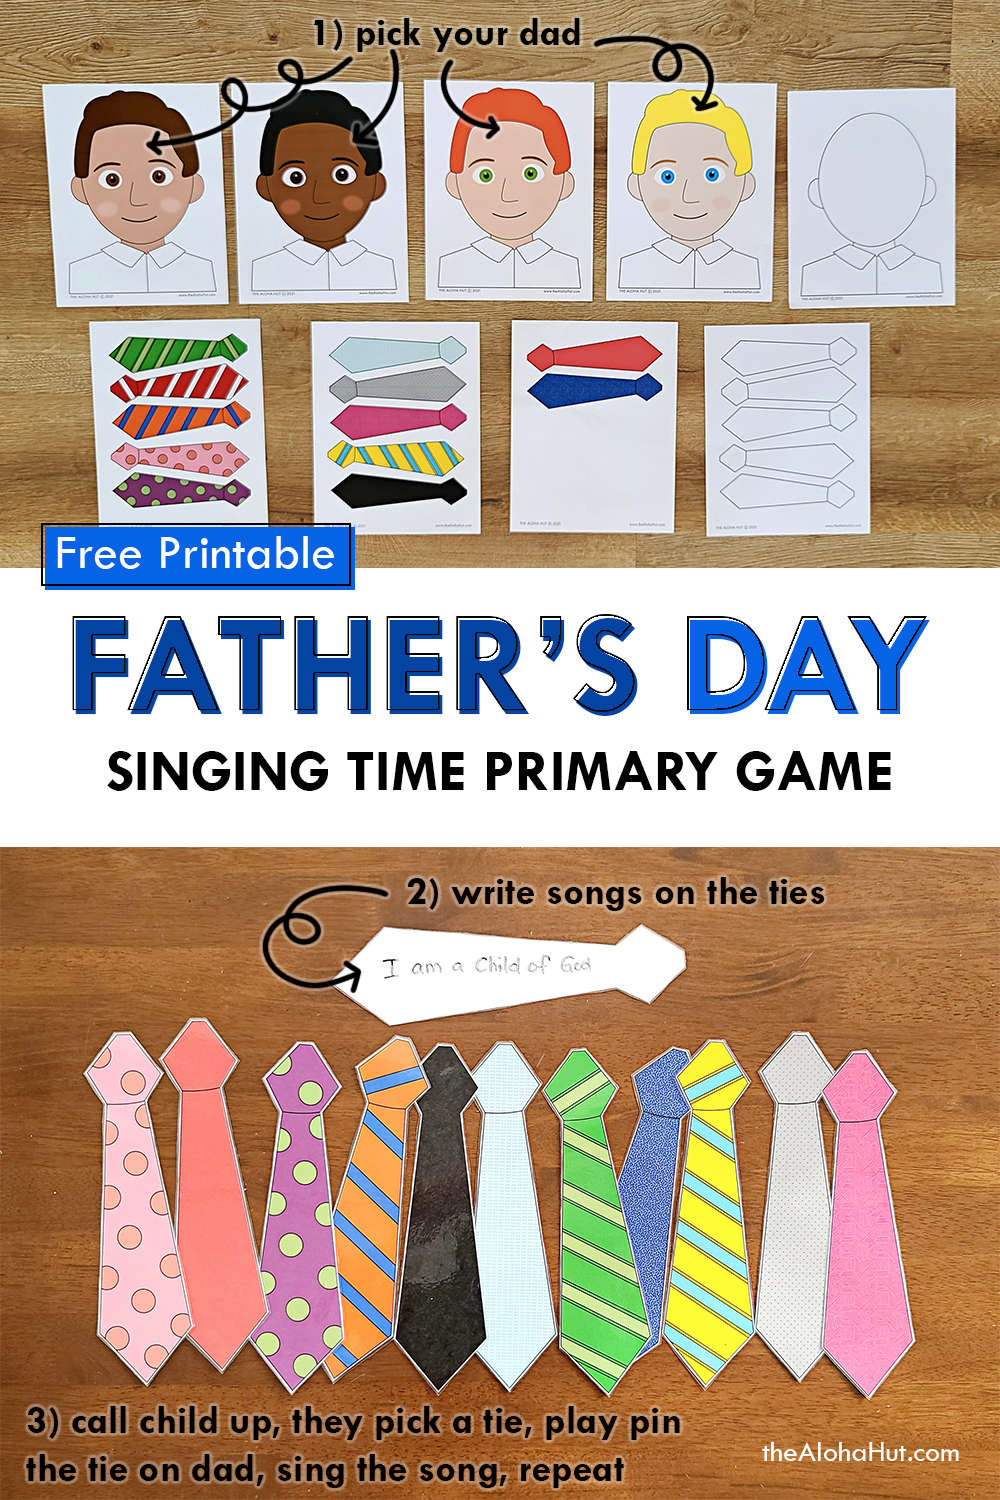 Fathers Day Singing Time Primary Game